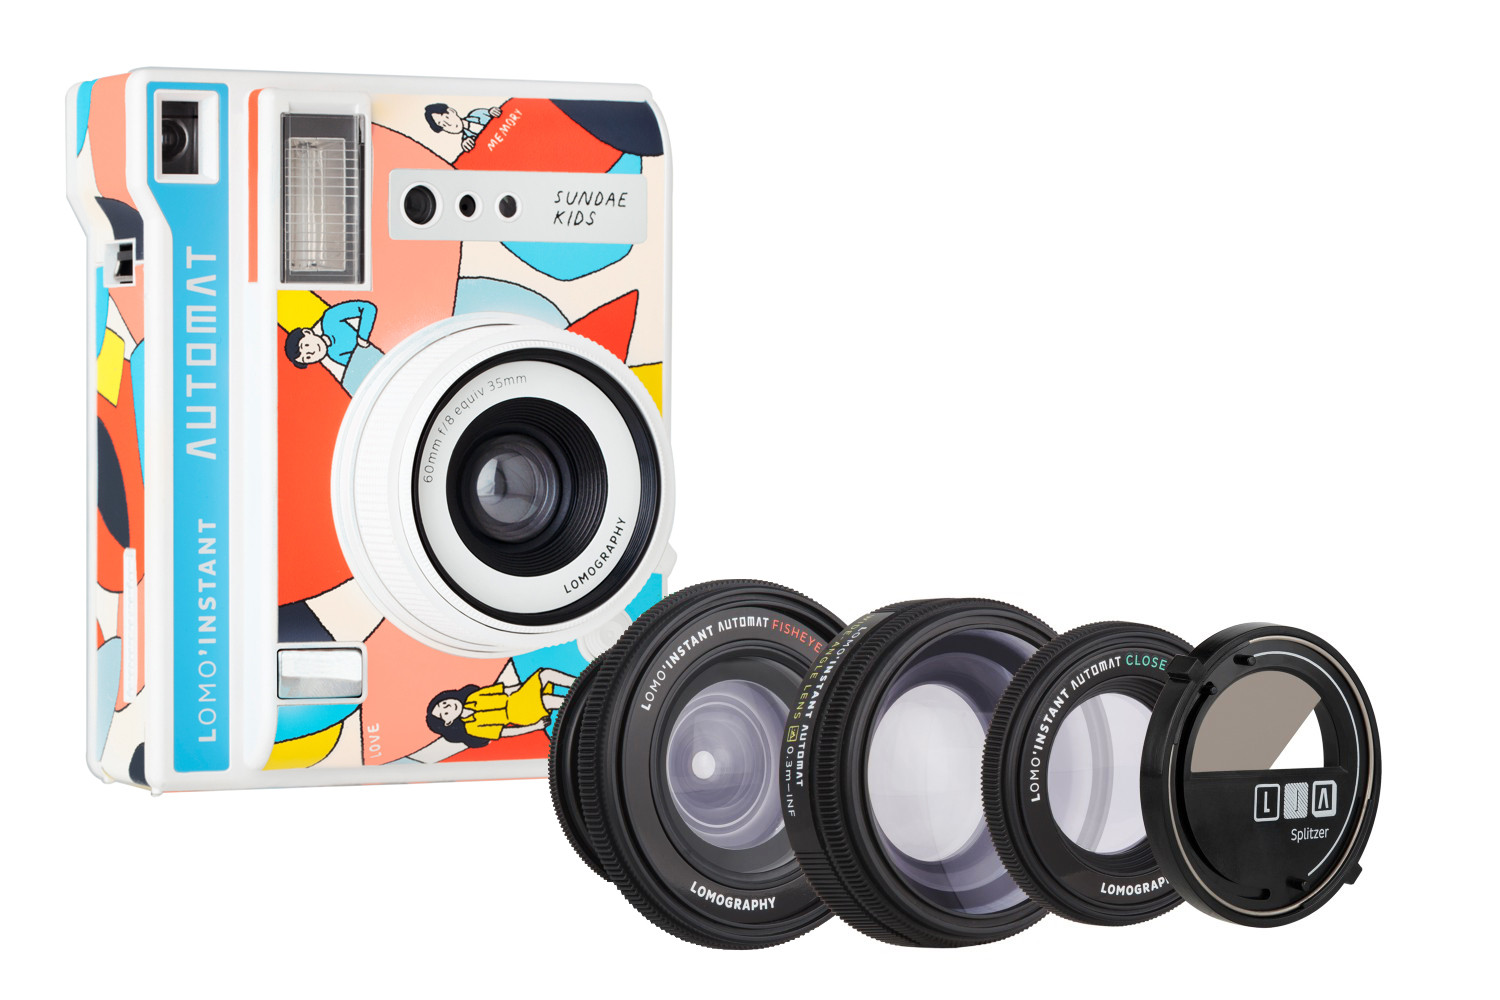 Lomo'Instant Automat Camera and Lenses (Sundae Kids Edition) + 3種類のアタッチメントレンズ付